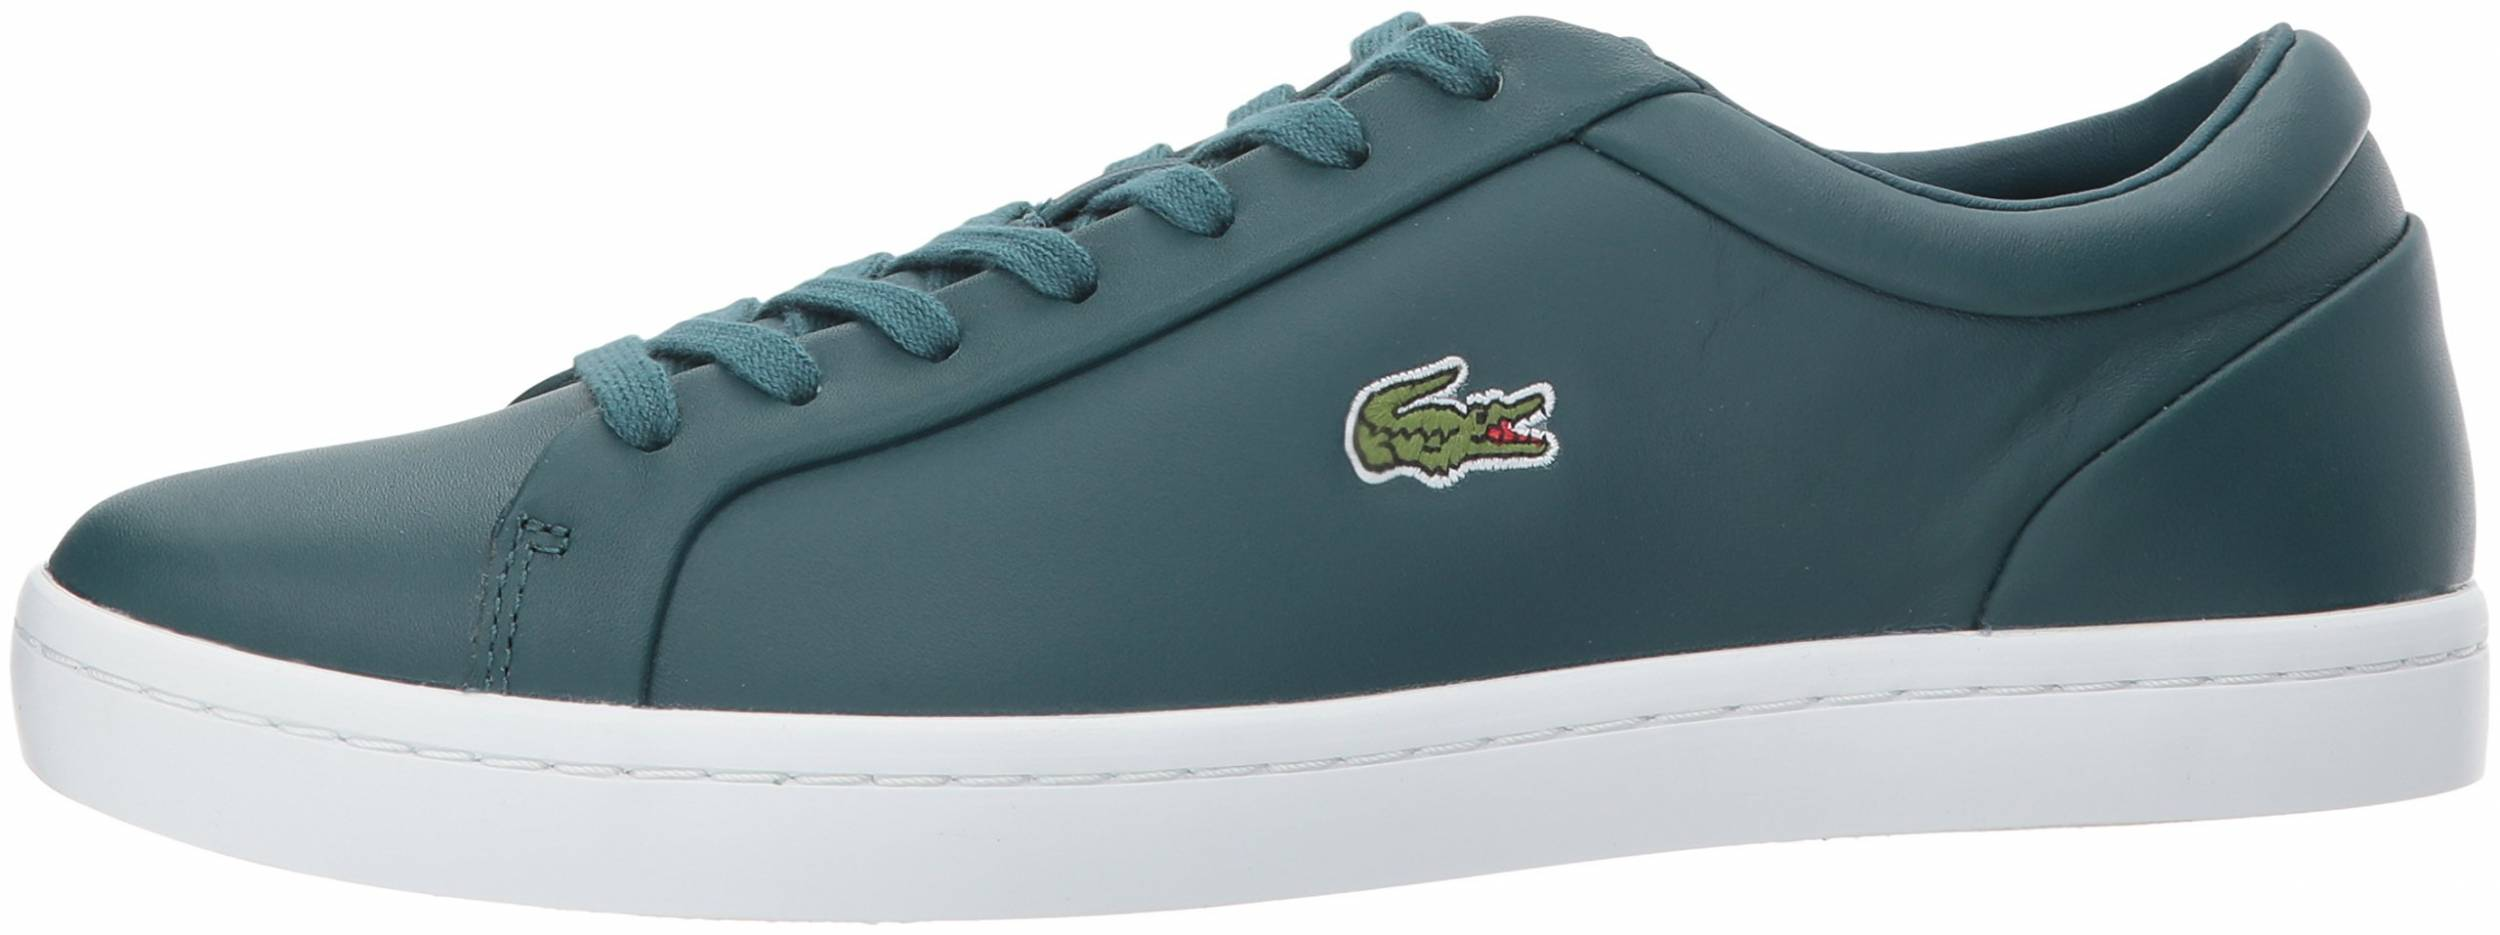 lacoste straightset 317 womens